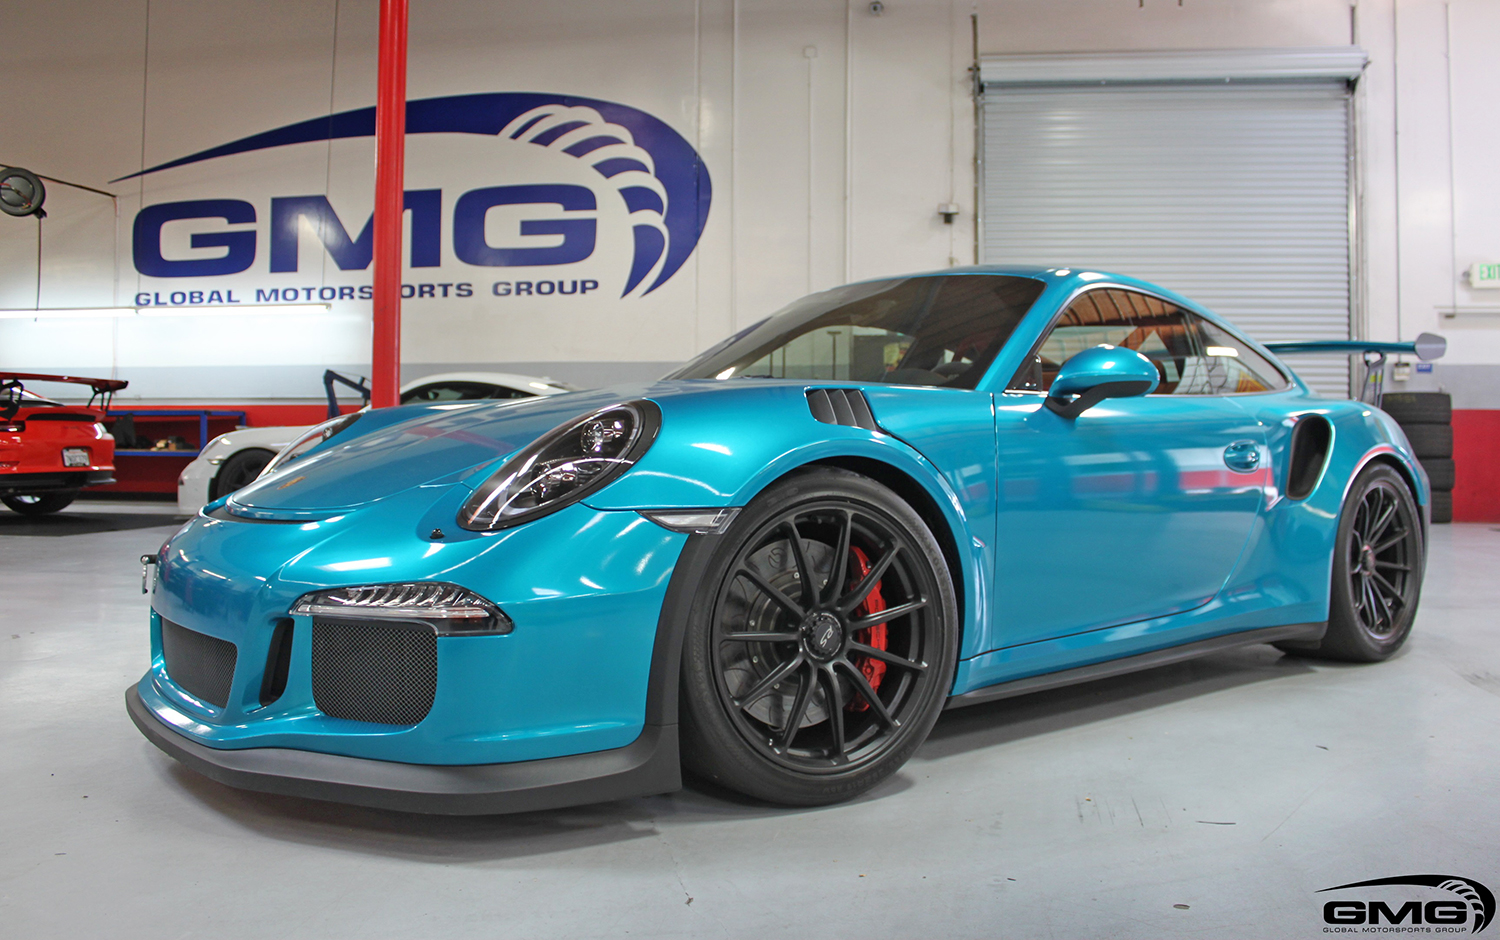 Porsche Teal 991 GT3RS built by GMG Racing